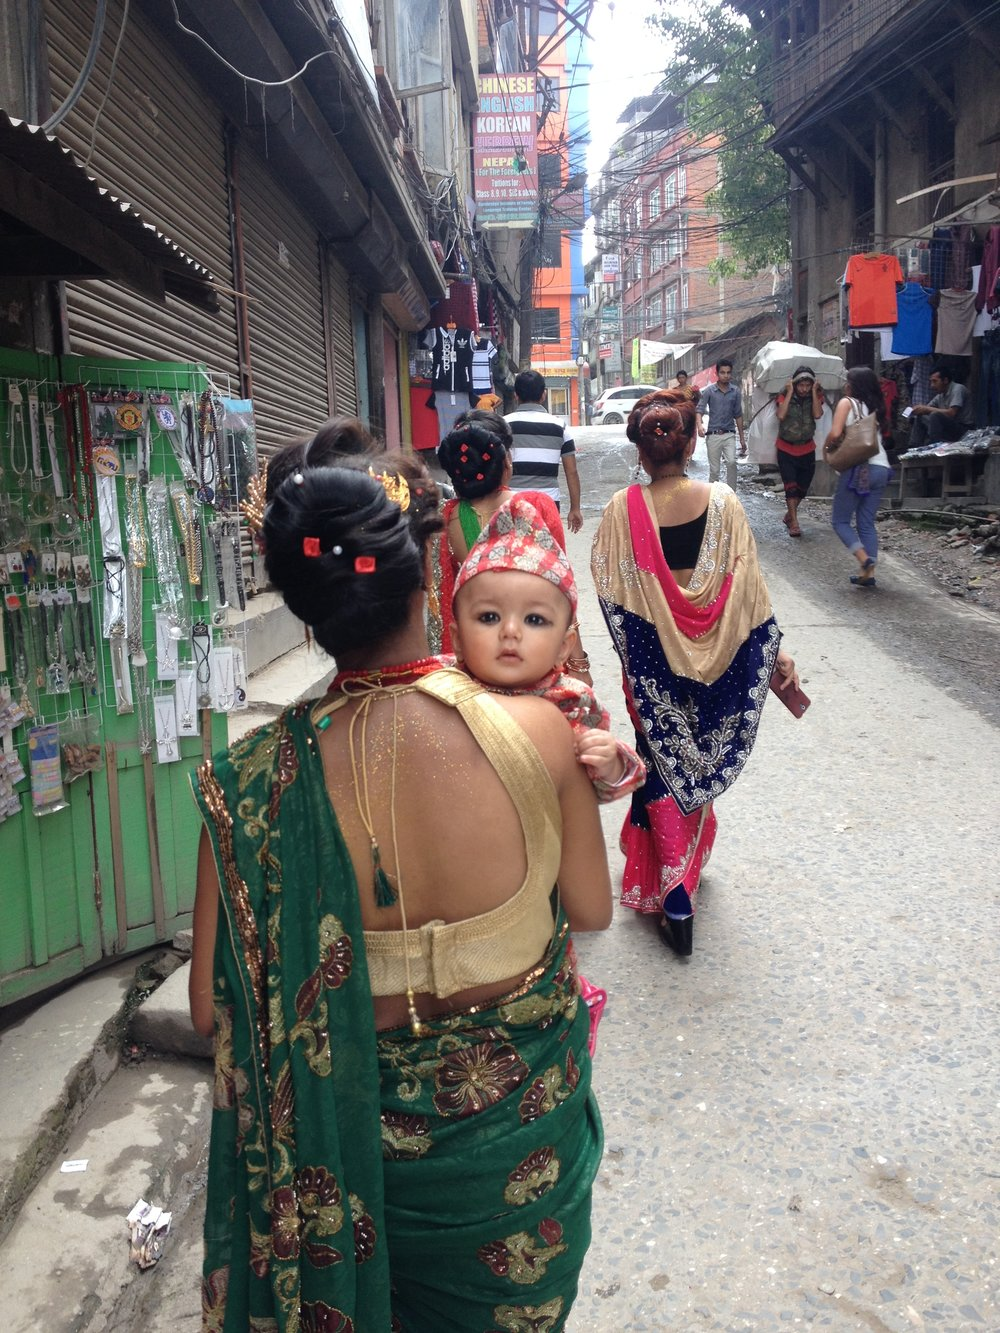 Streets of Thamel in Kathmandu. Pretty tempting, wouldn't you say?